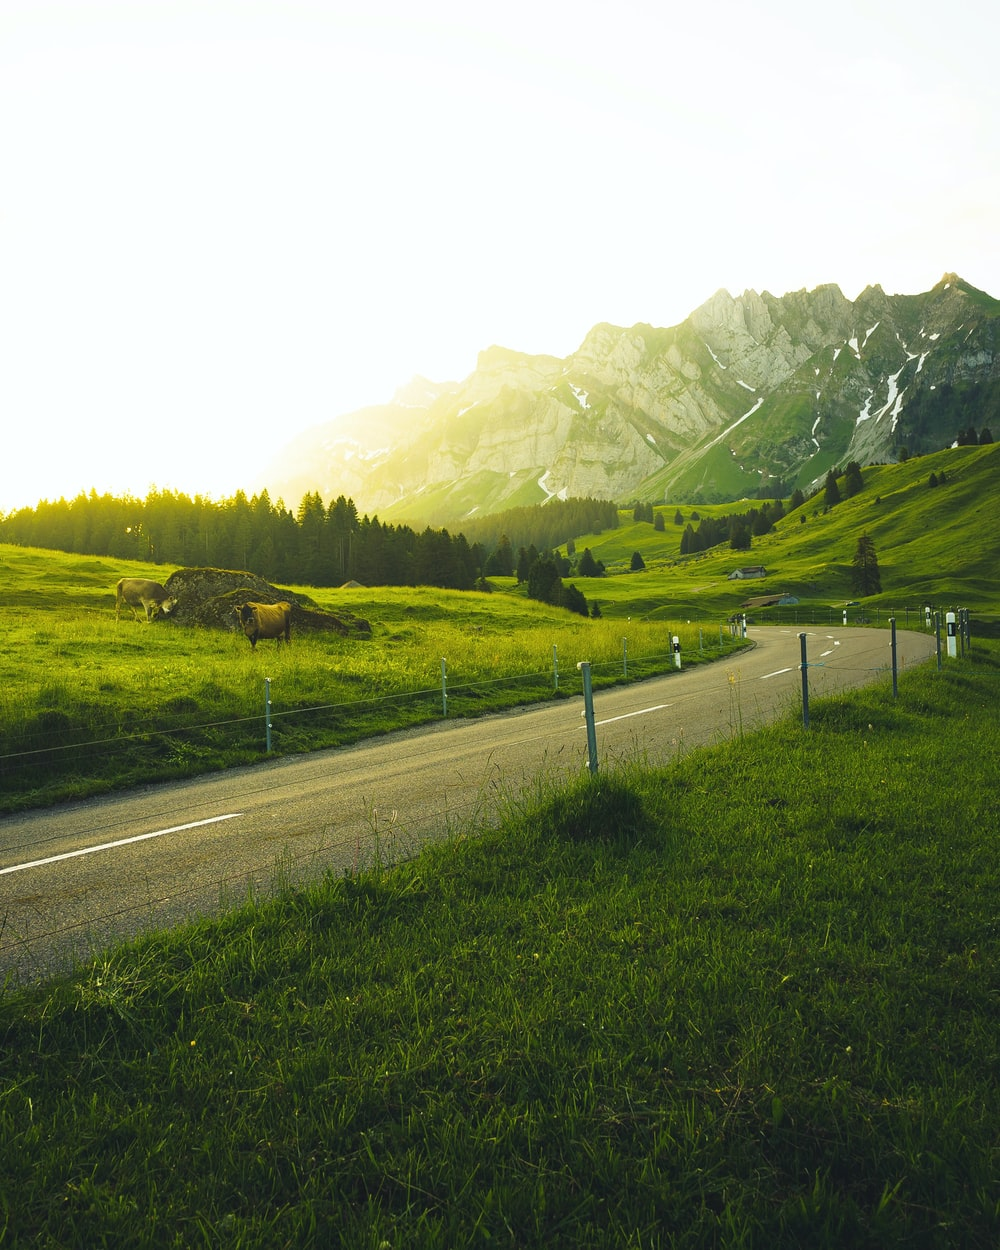 asphalt road between grass field and mountain in the distance during daytime